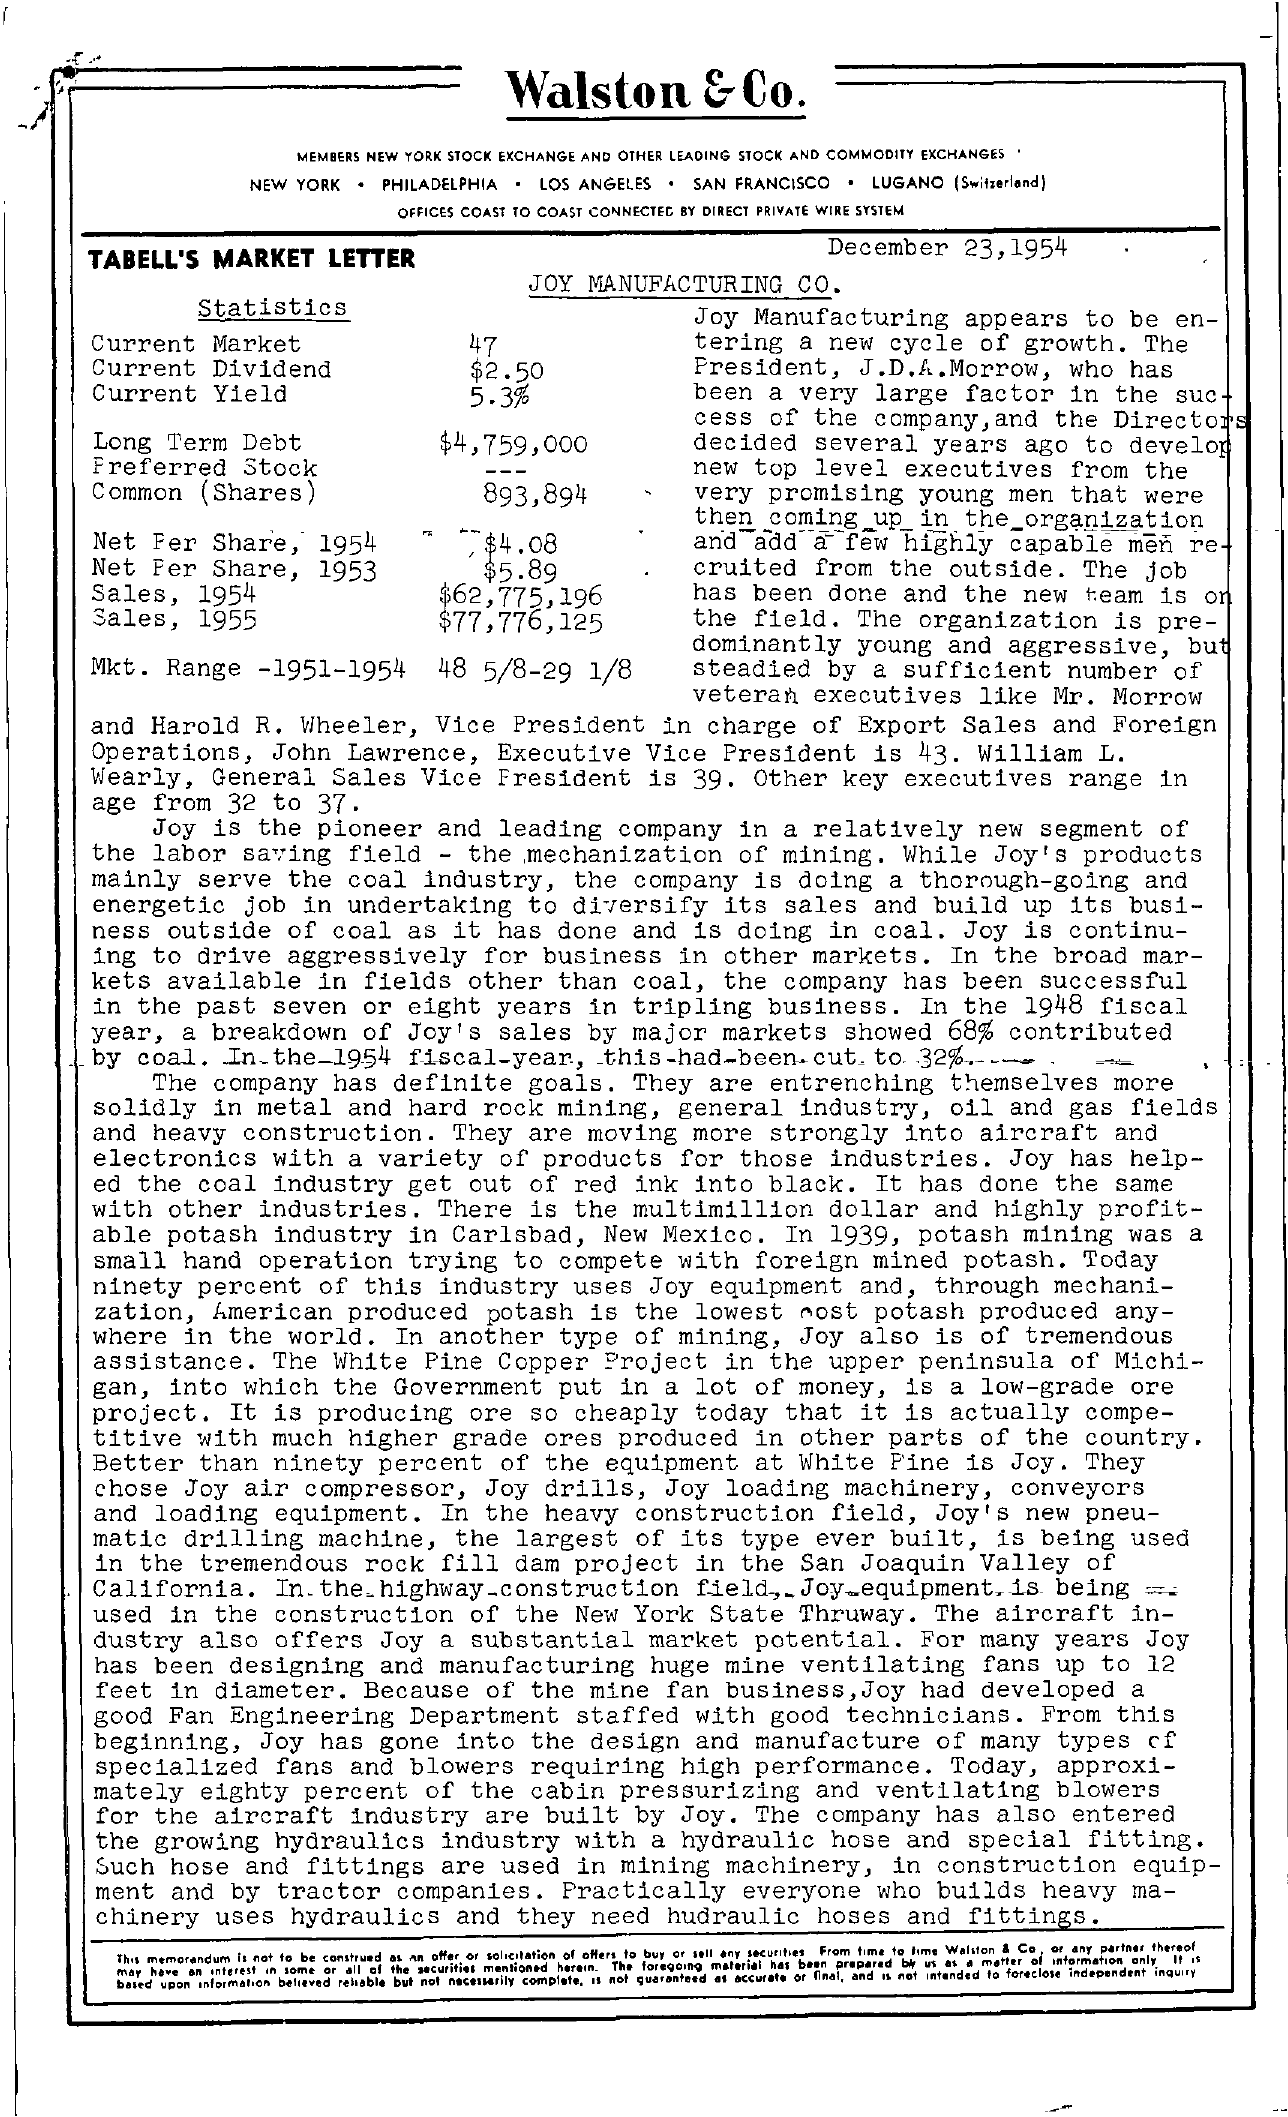 Tabell's Market Letter - December 23, 1954 page 1